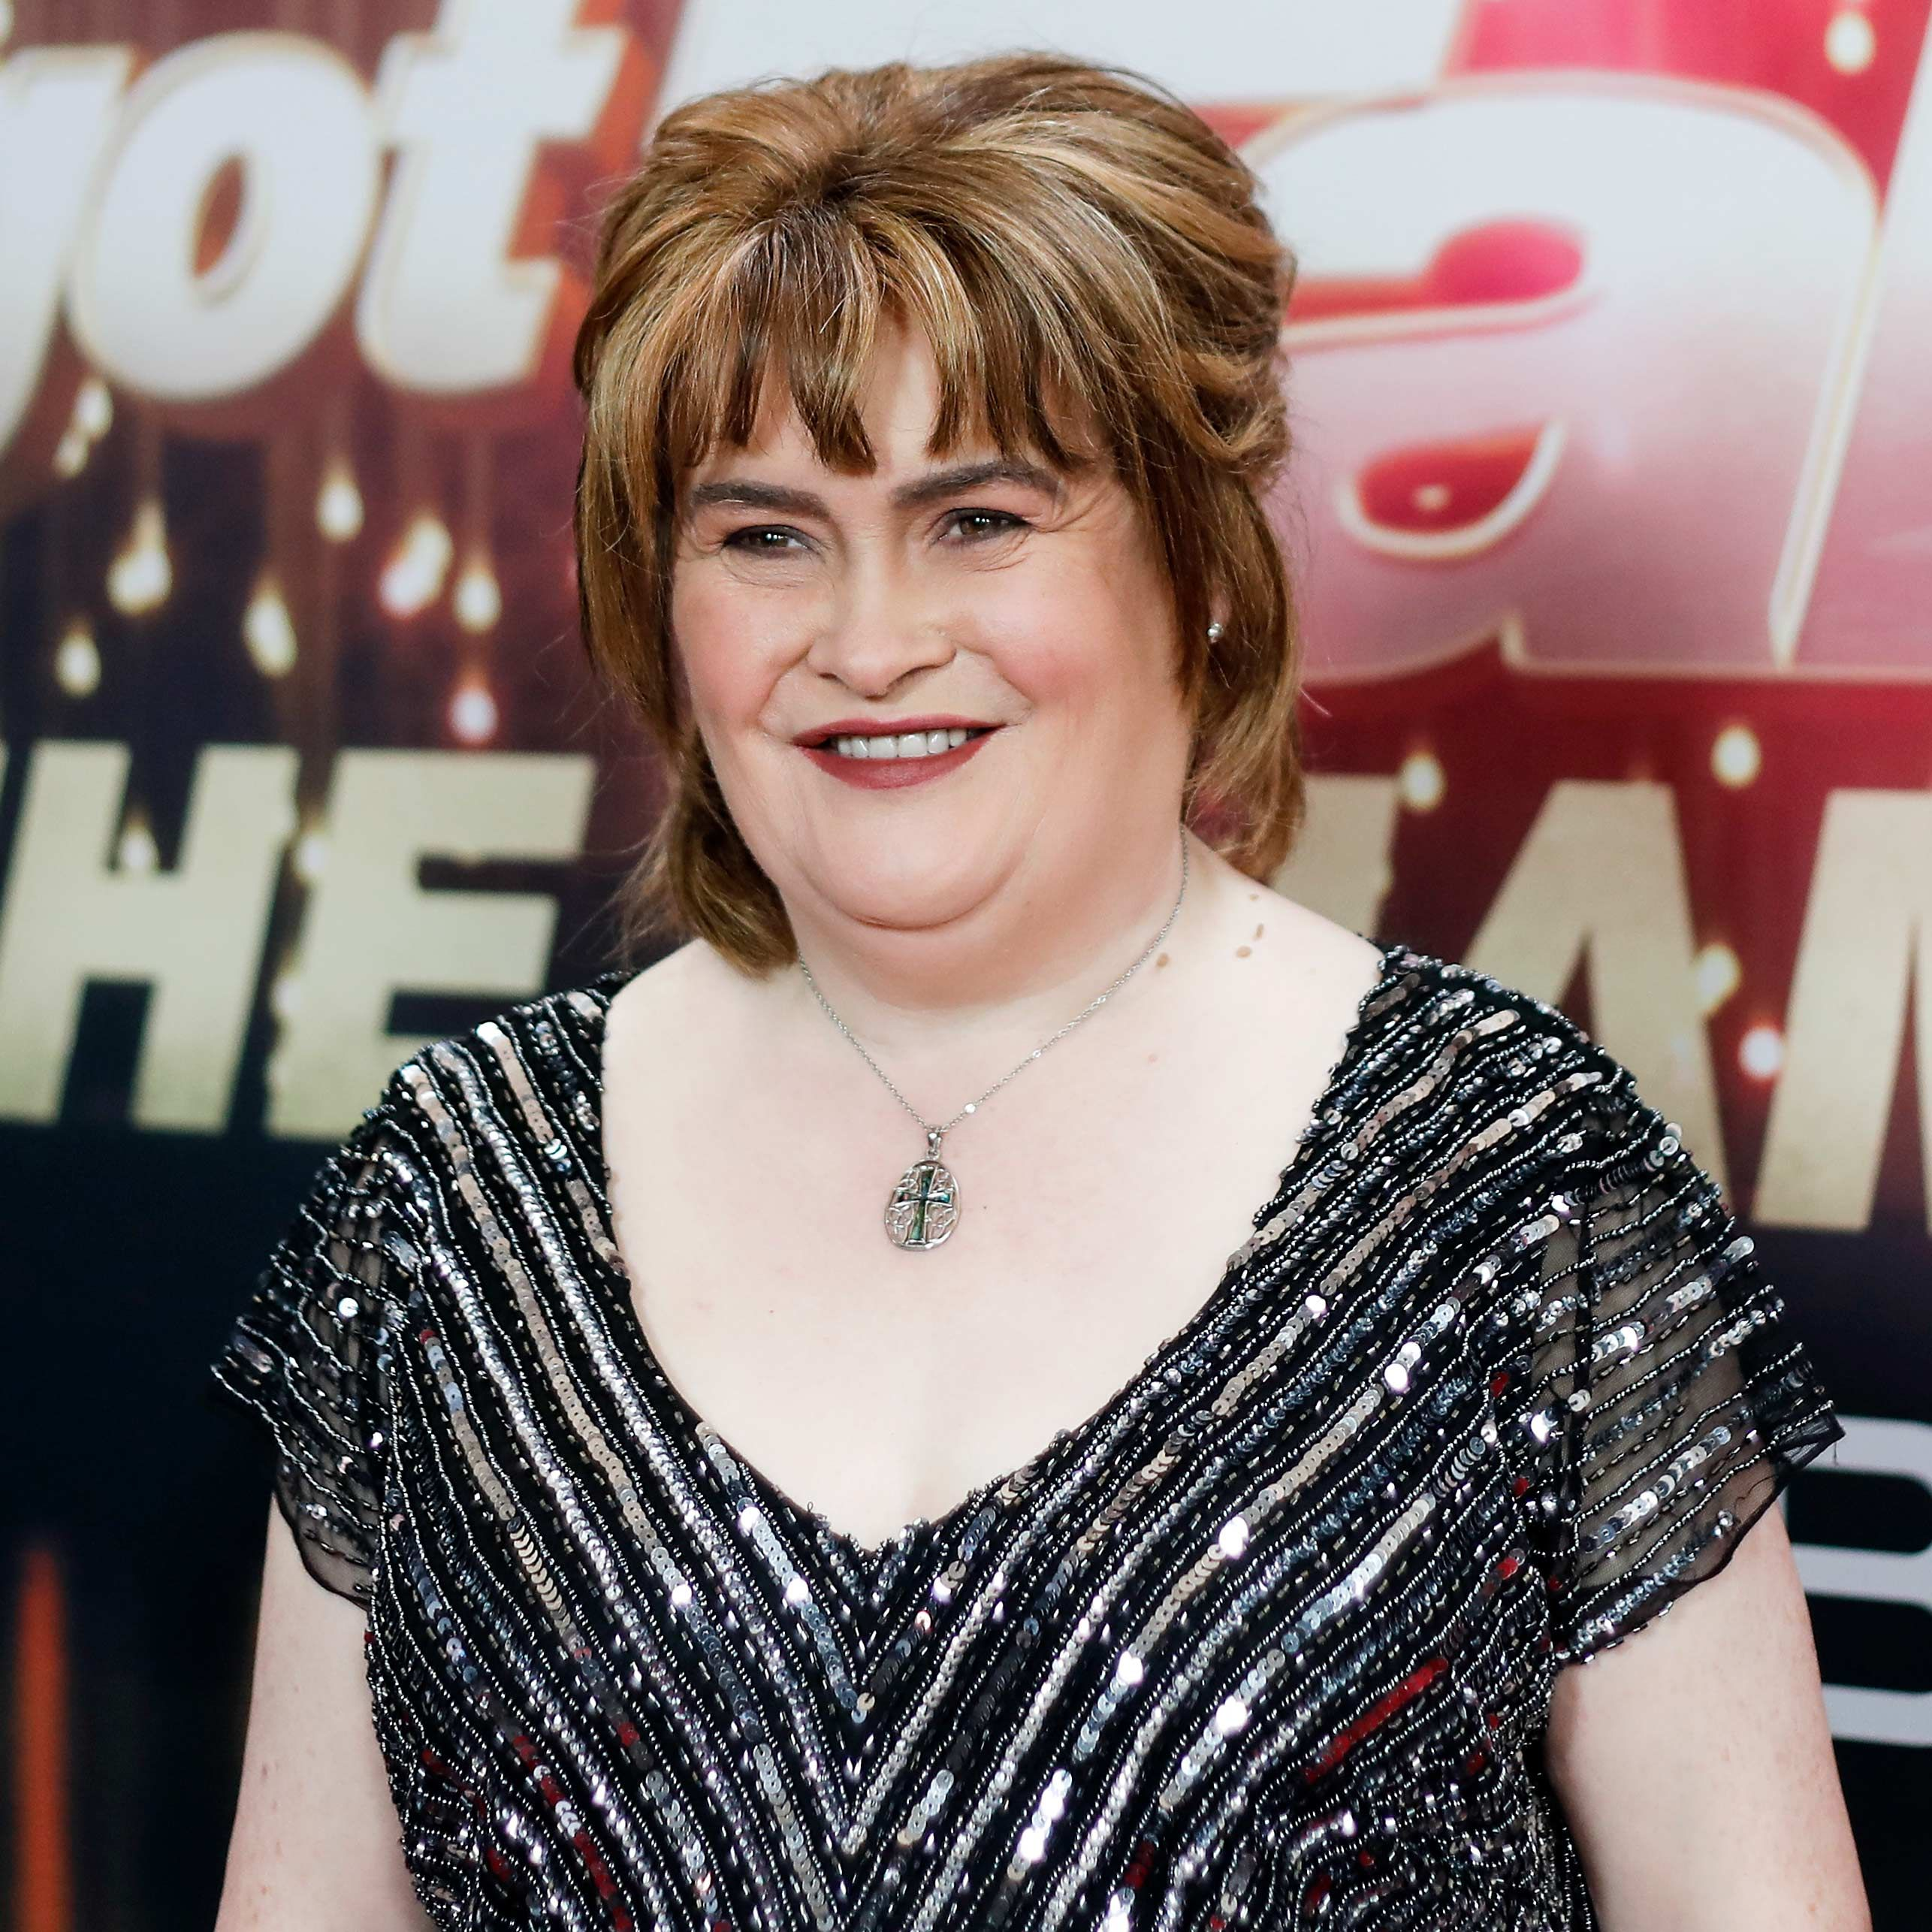 Britain's Got Talent's Susan Boyle talks starting a family and says